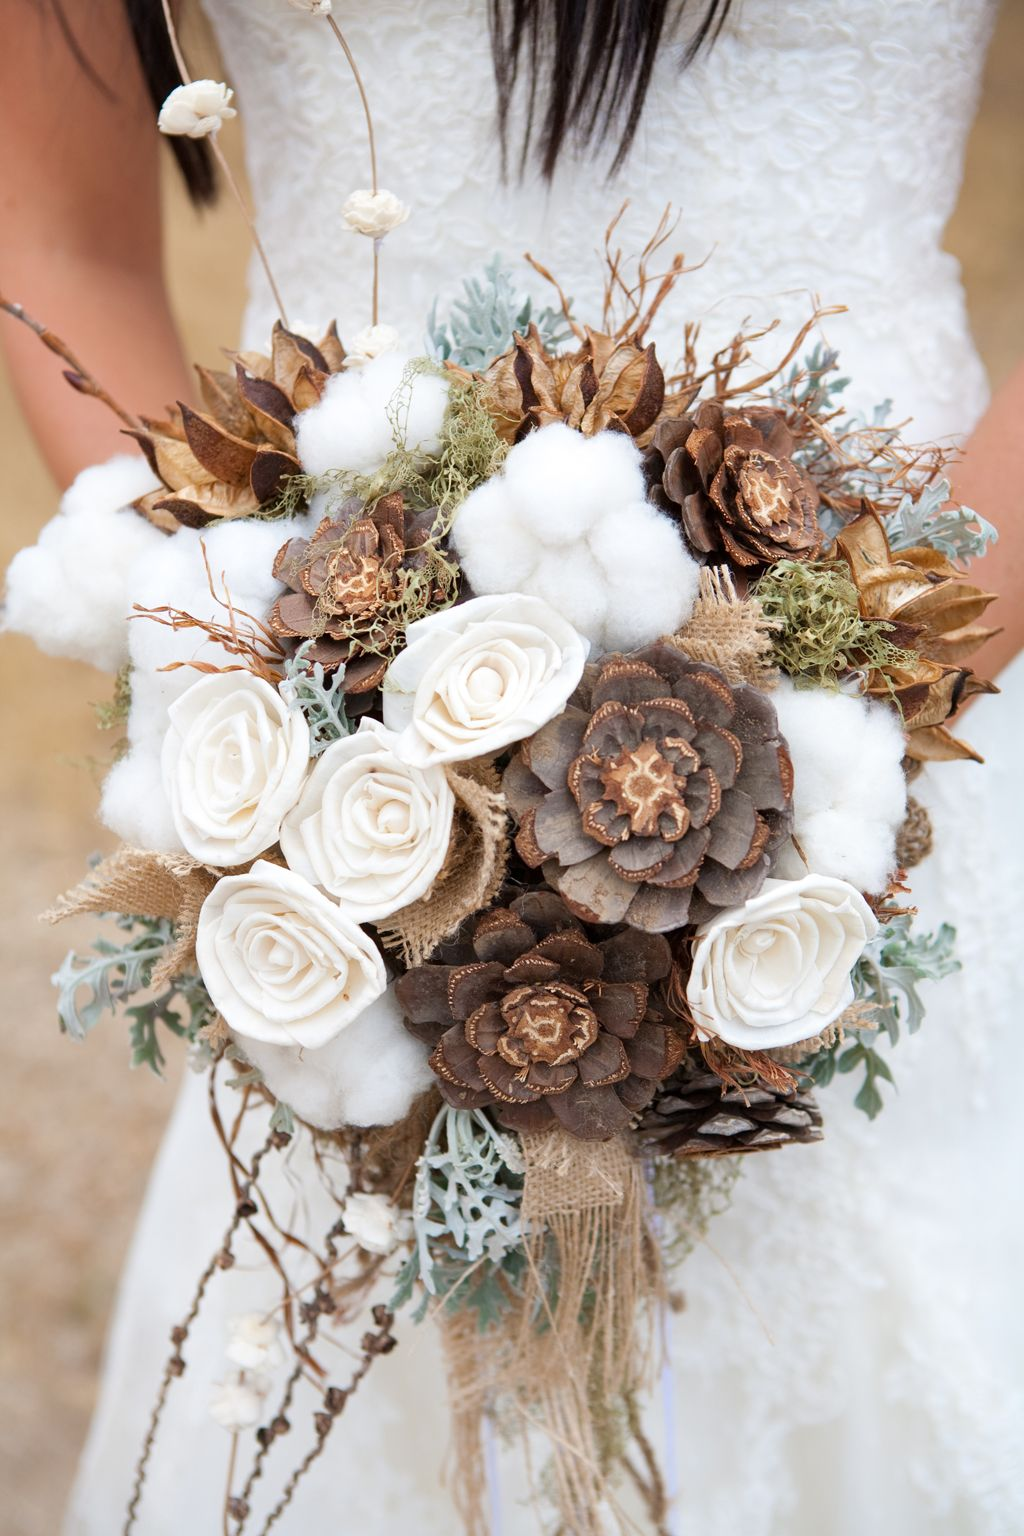 Wedding ideas rustic theme  BEST FLOWERS I love the colors and texture and that it could be